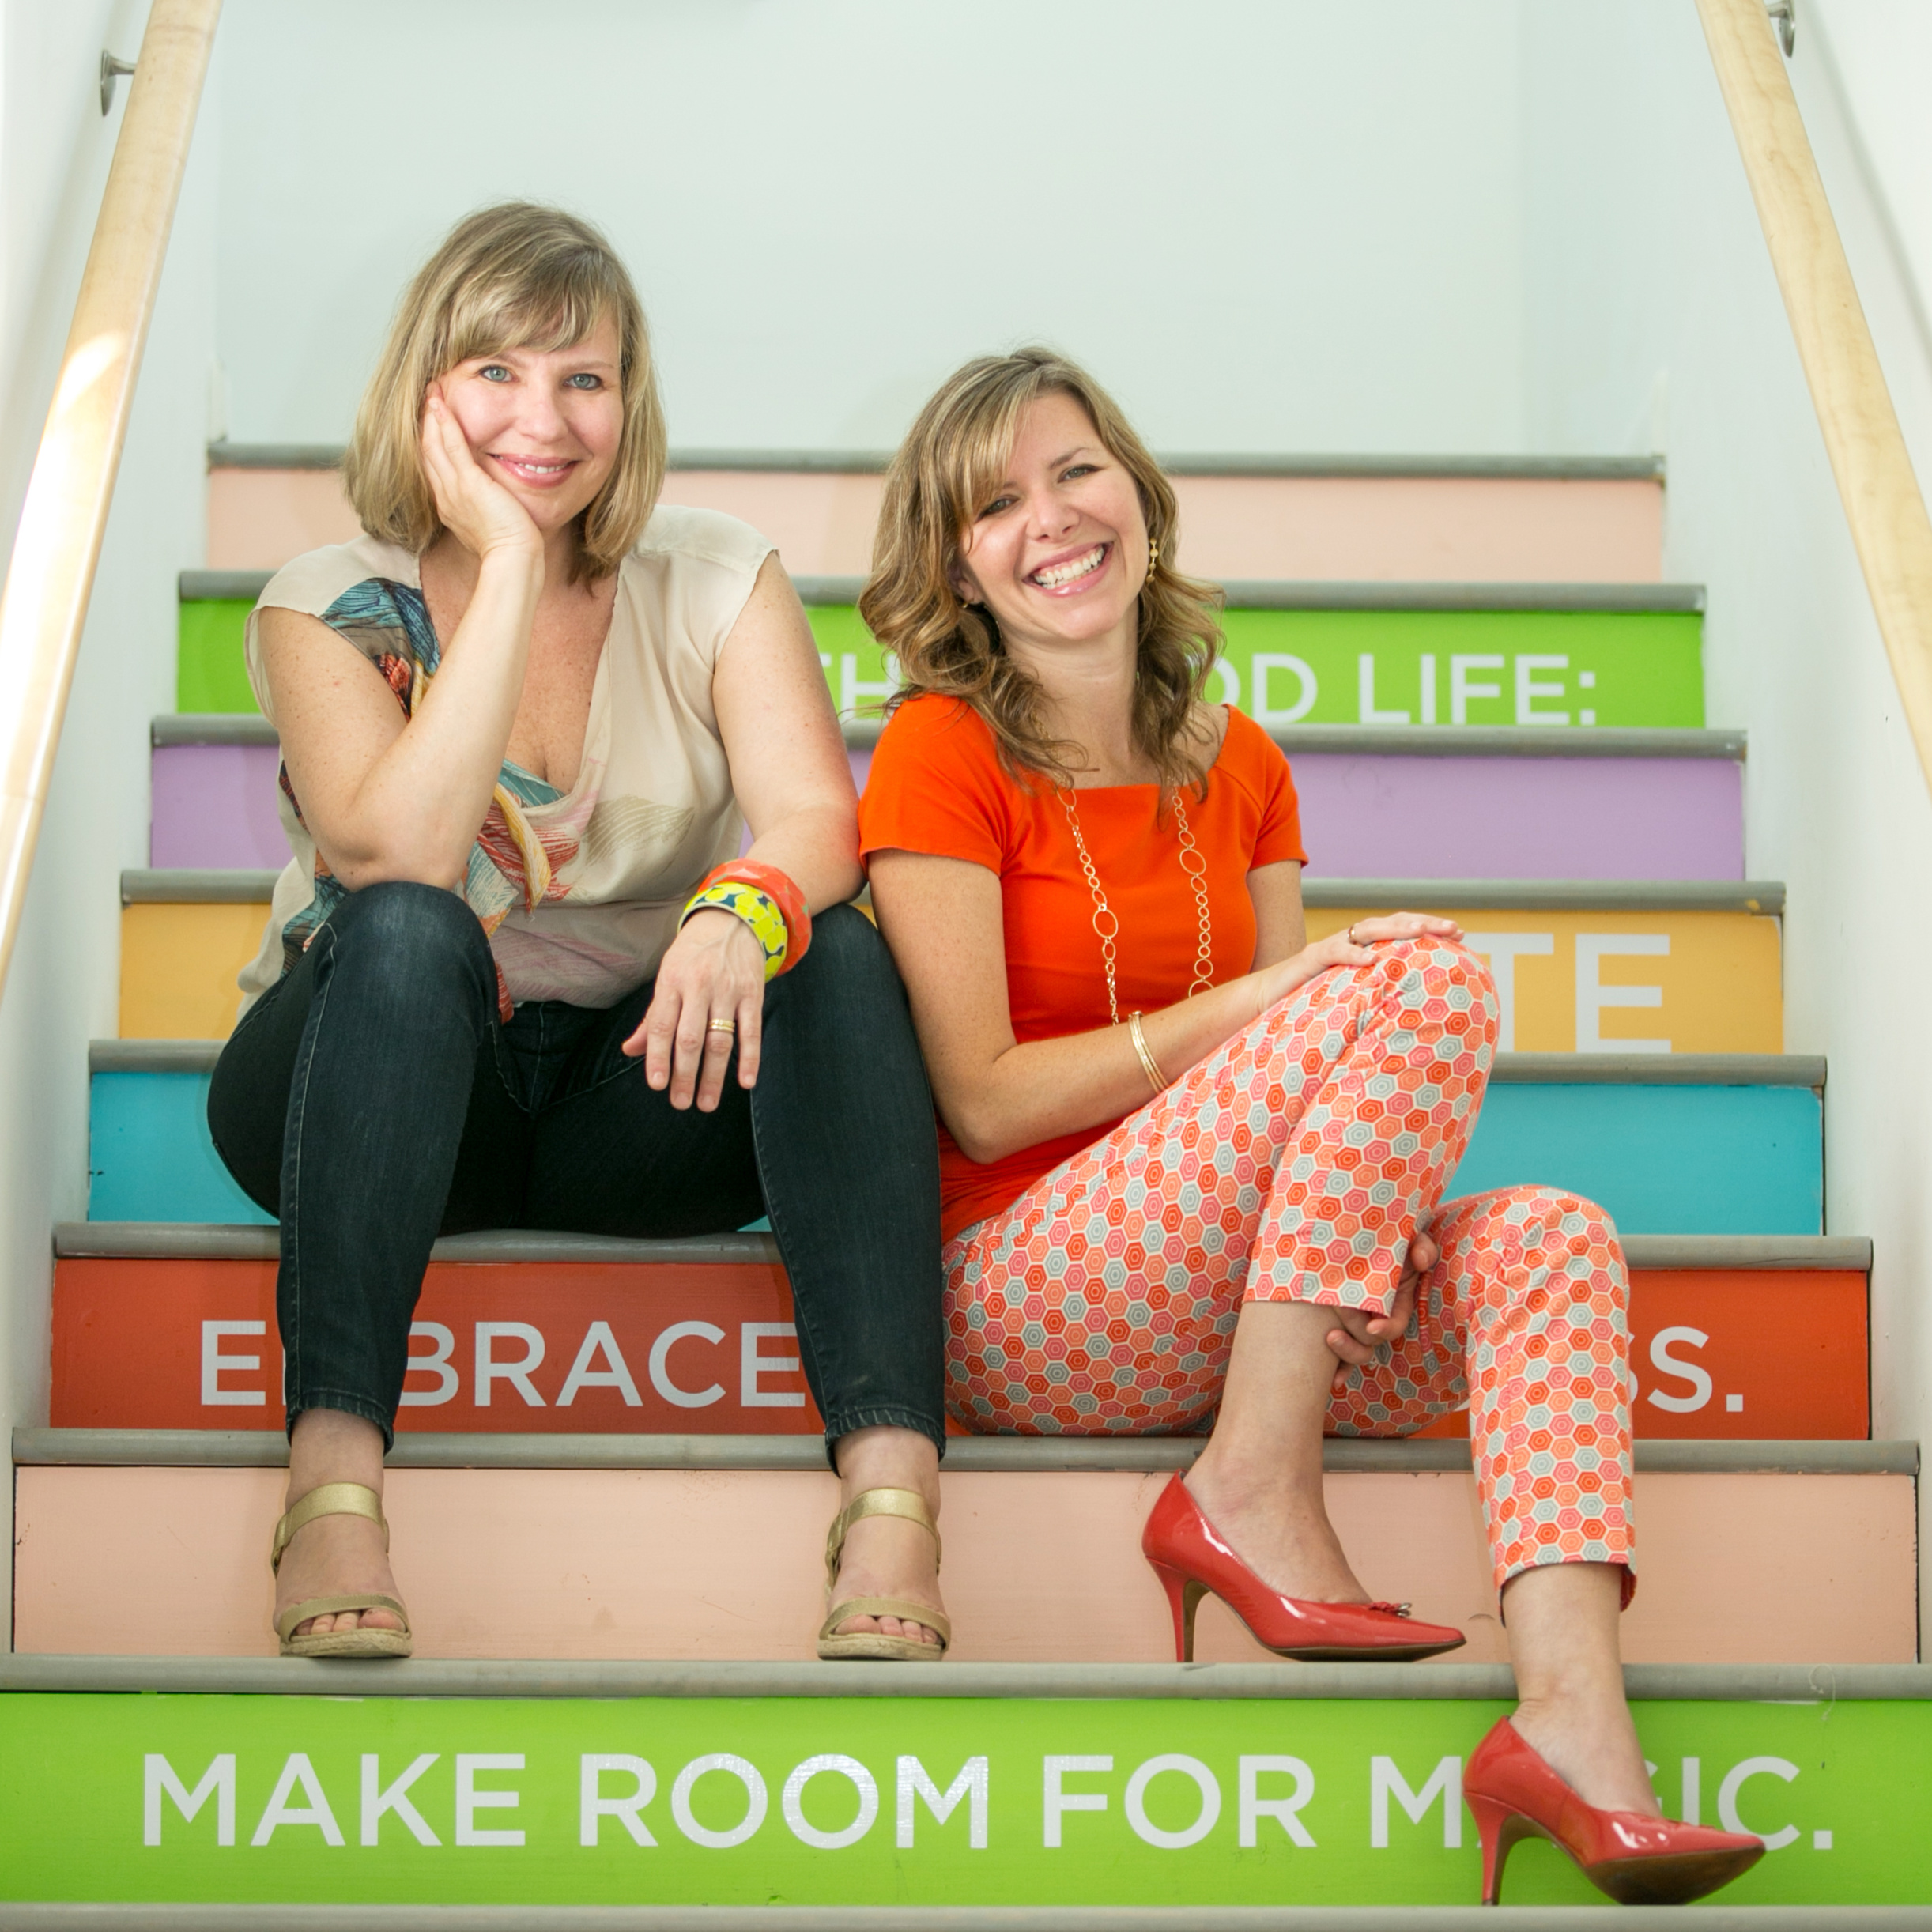 Heather KanoFsky & Susan Turnock - (gifts for the good life)Branding gurus and gifting geniuses Heather and Susan are on deck to not only teach us all the importance of collaborative brand story-telling but to also lead a fun and exciting hands-on workshop!